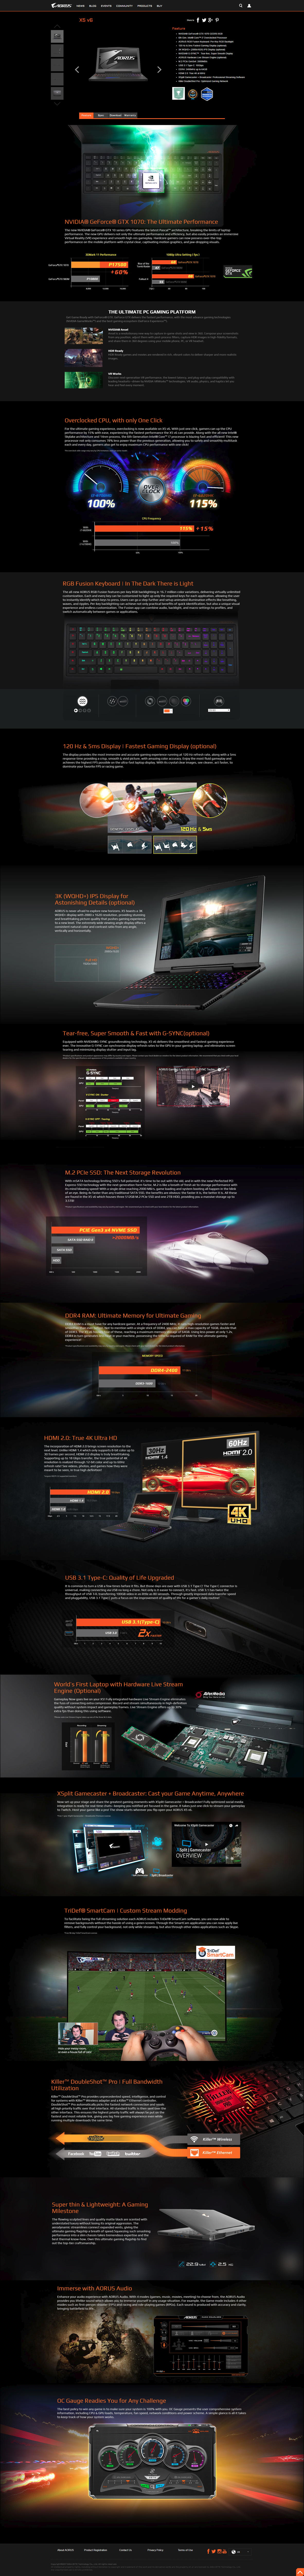 screencapture-aorus-product-detail-php-2018-07-02-17-02-25.png